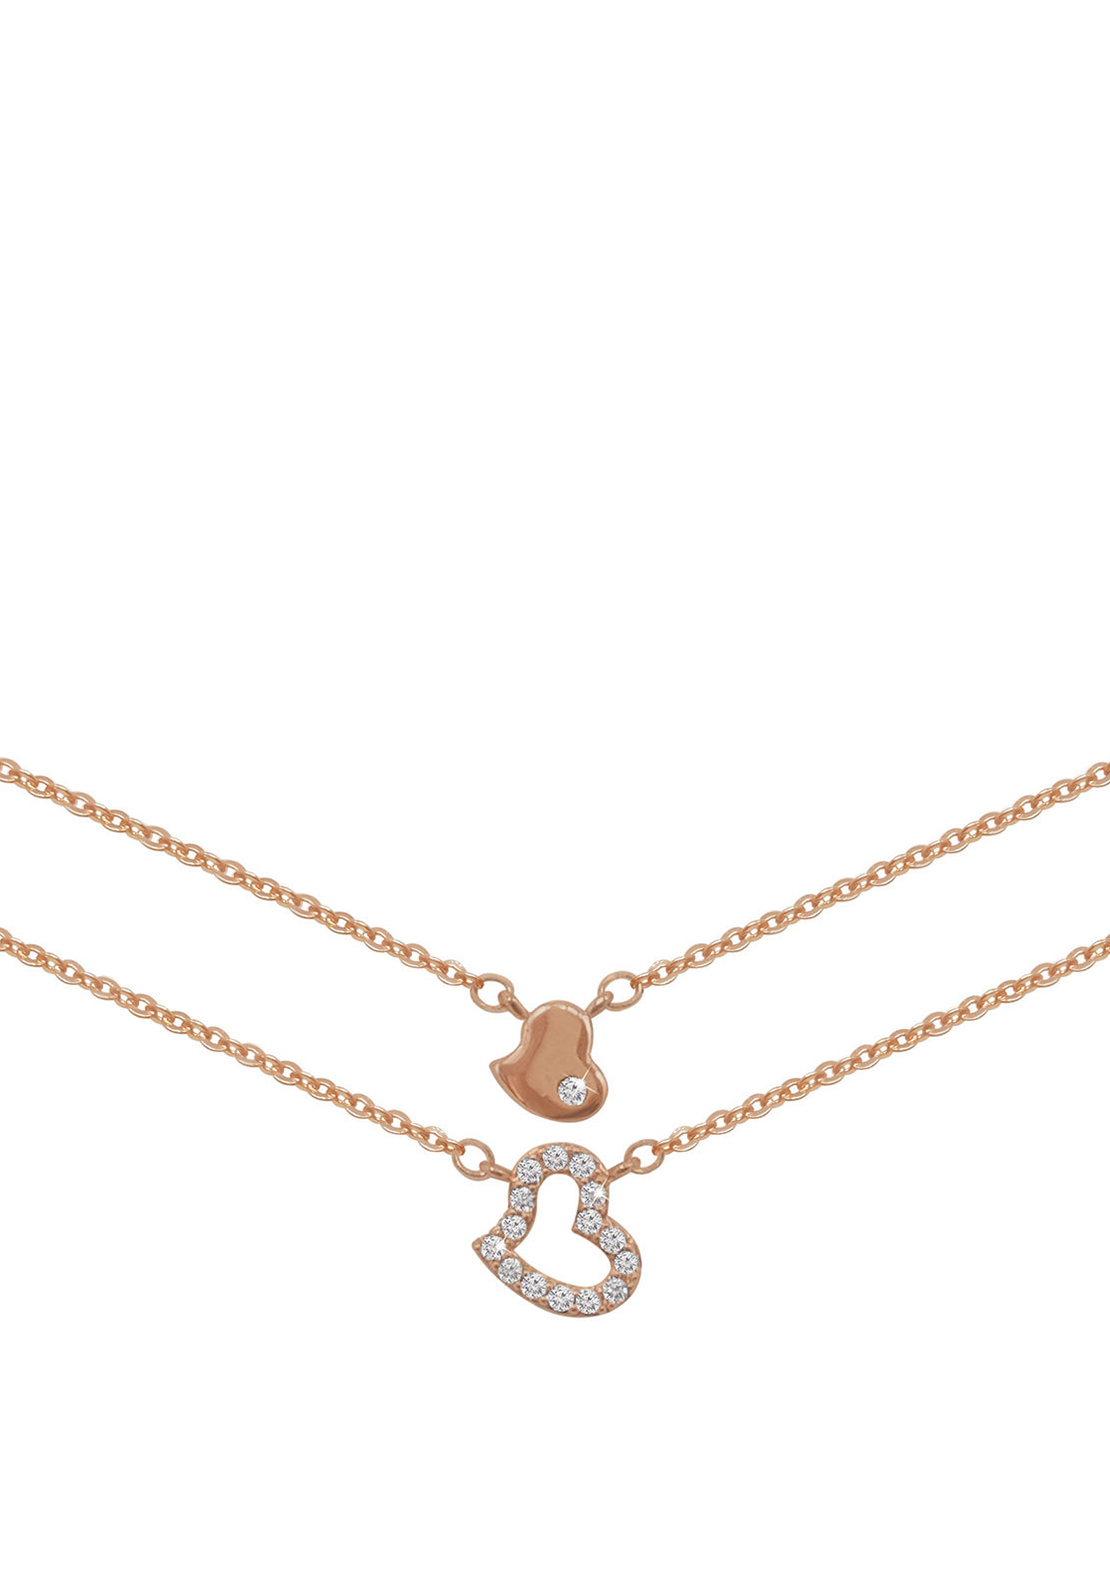 Tipperary Crystal Double Strand Heart Pendant Necklace, Rose Gold